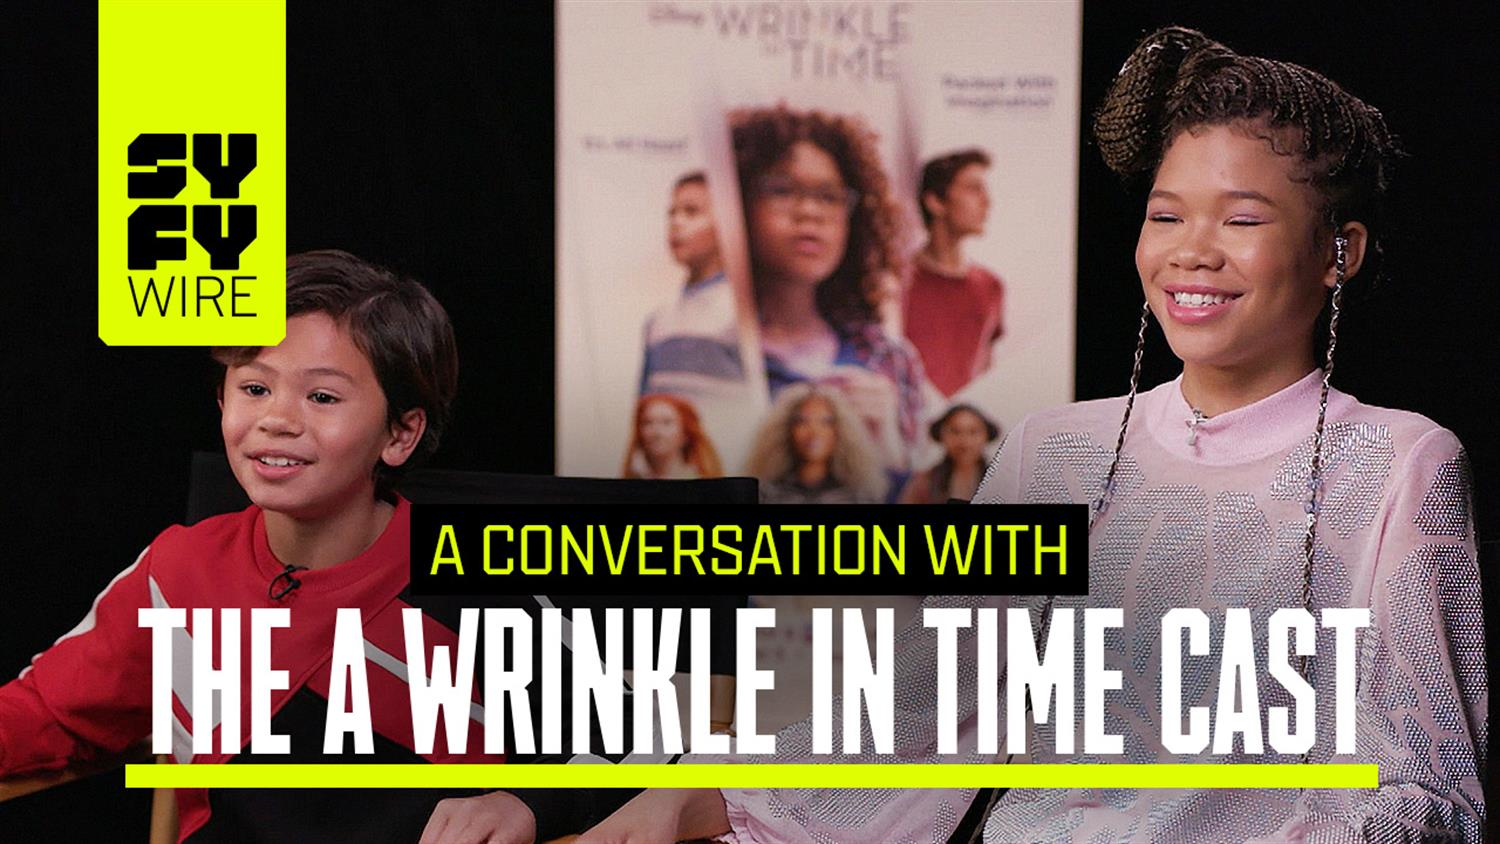 Oprah Gives The Best Hugs: The Wrinkle In Time Cast Speaks